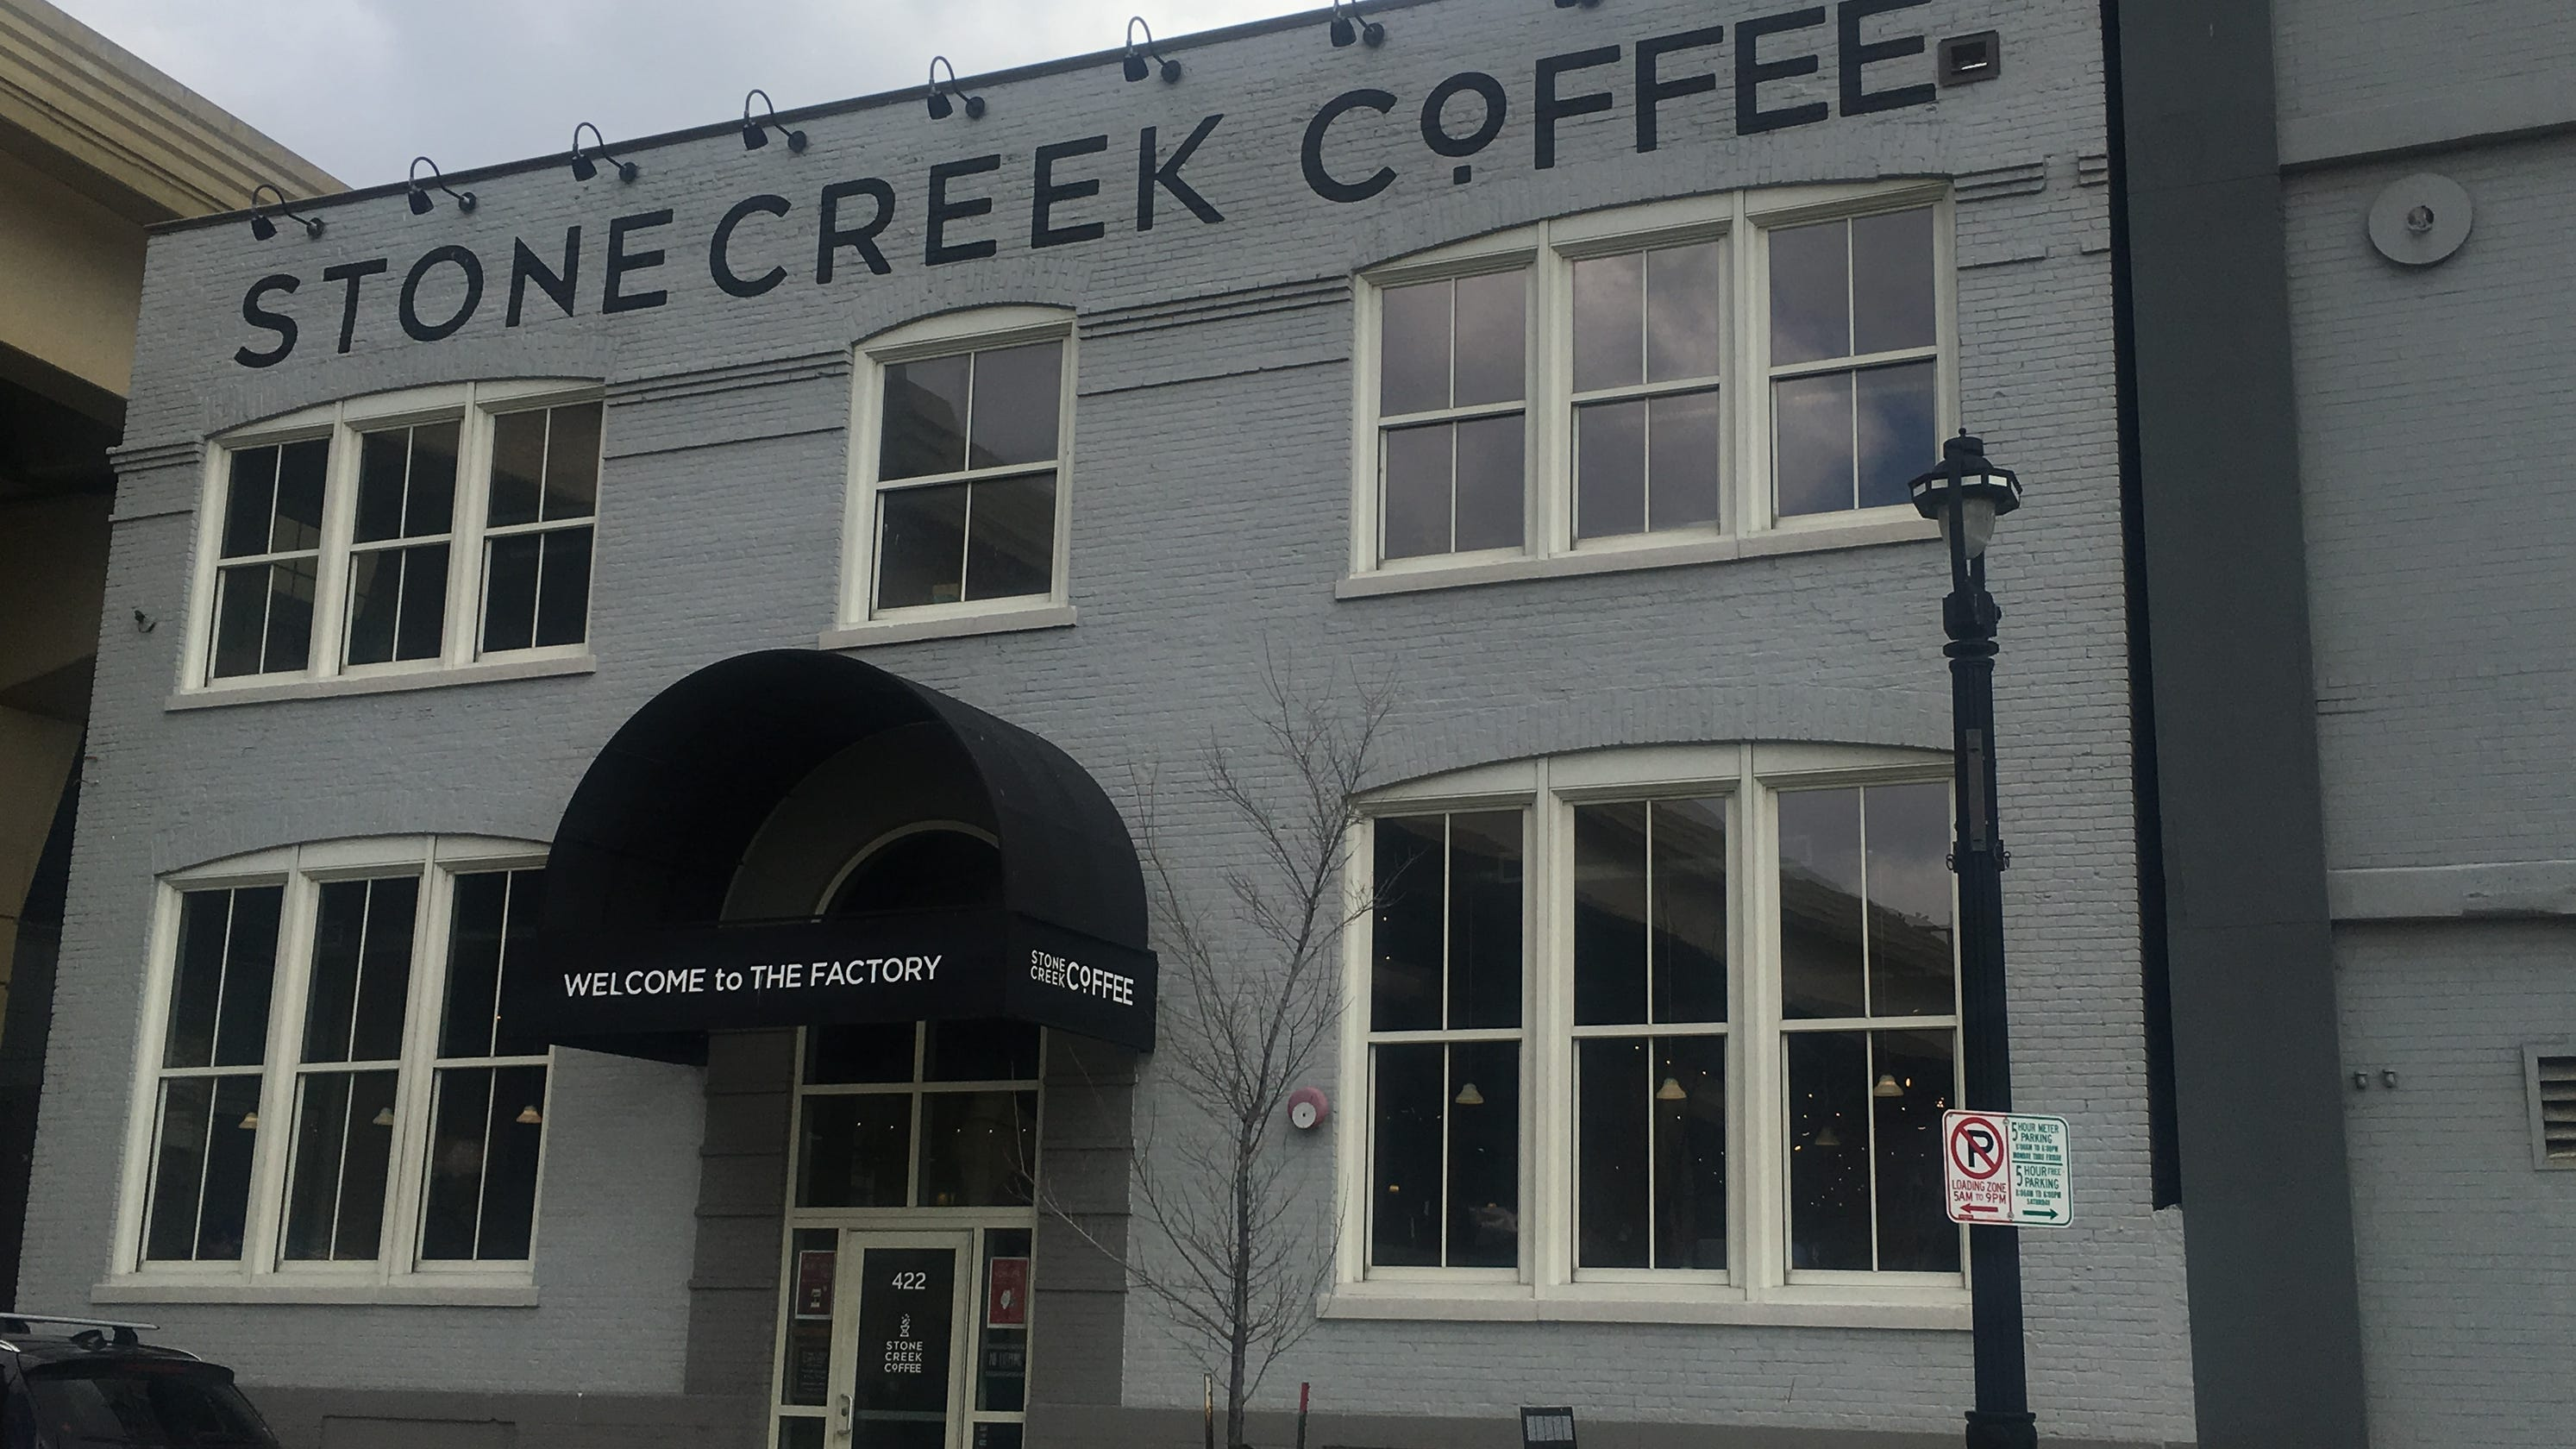 Stone Creek Coffee Employees Vote Against Forming Union